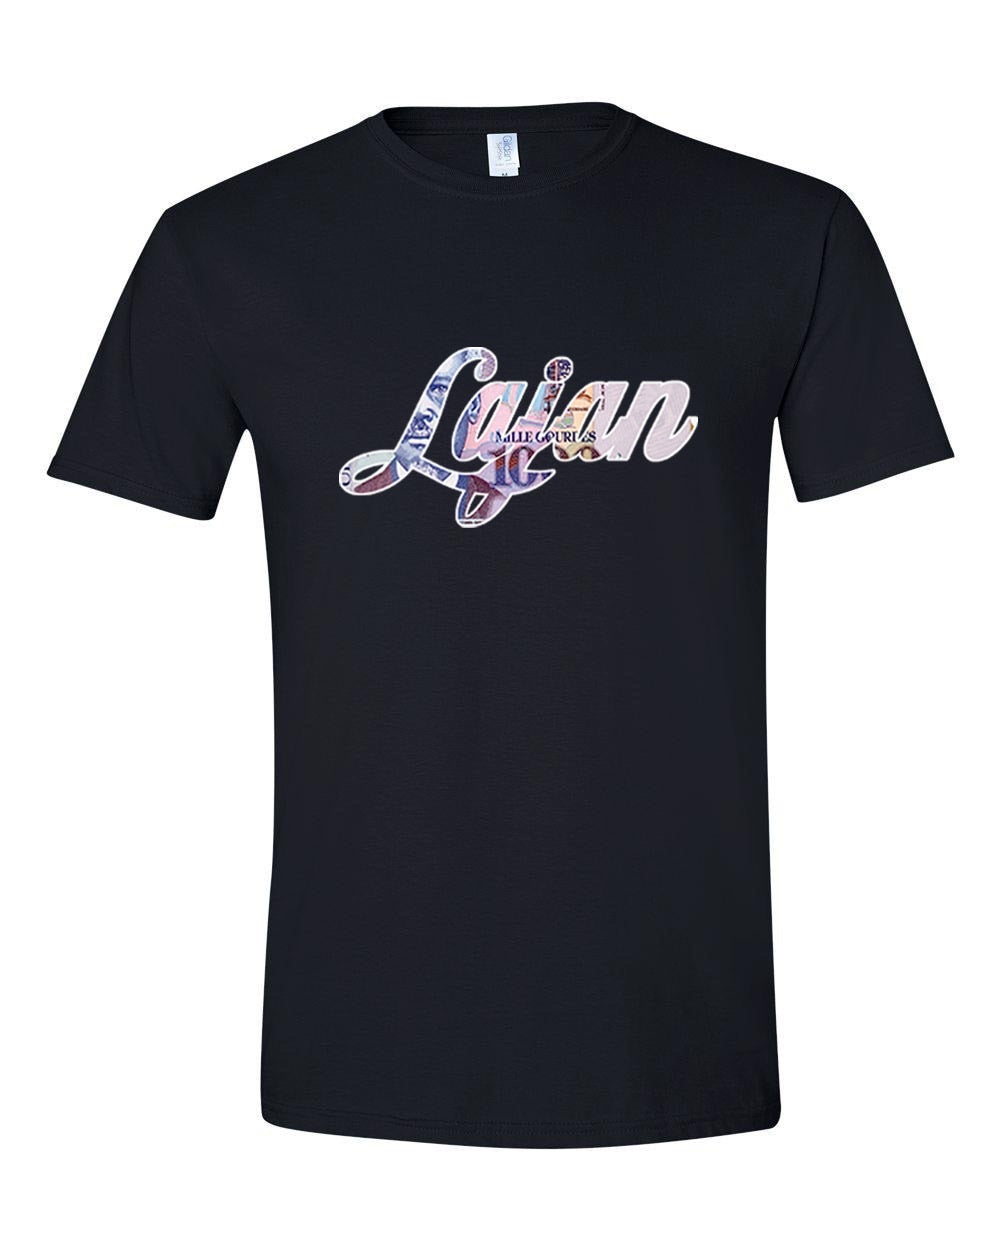 Lajan T-shirt Black